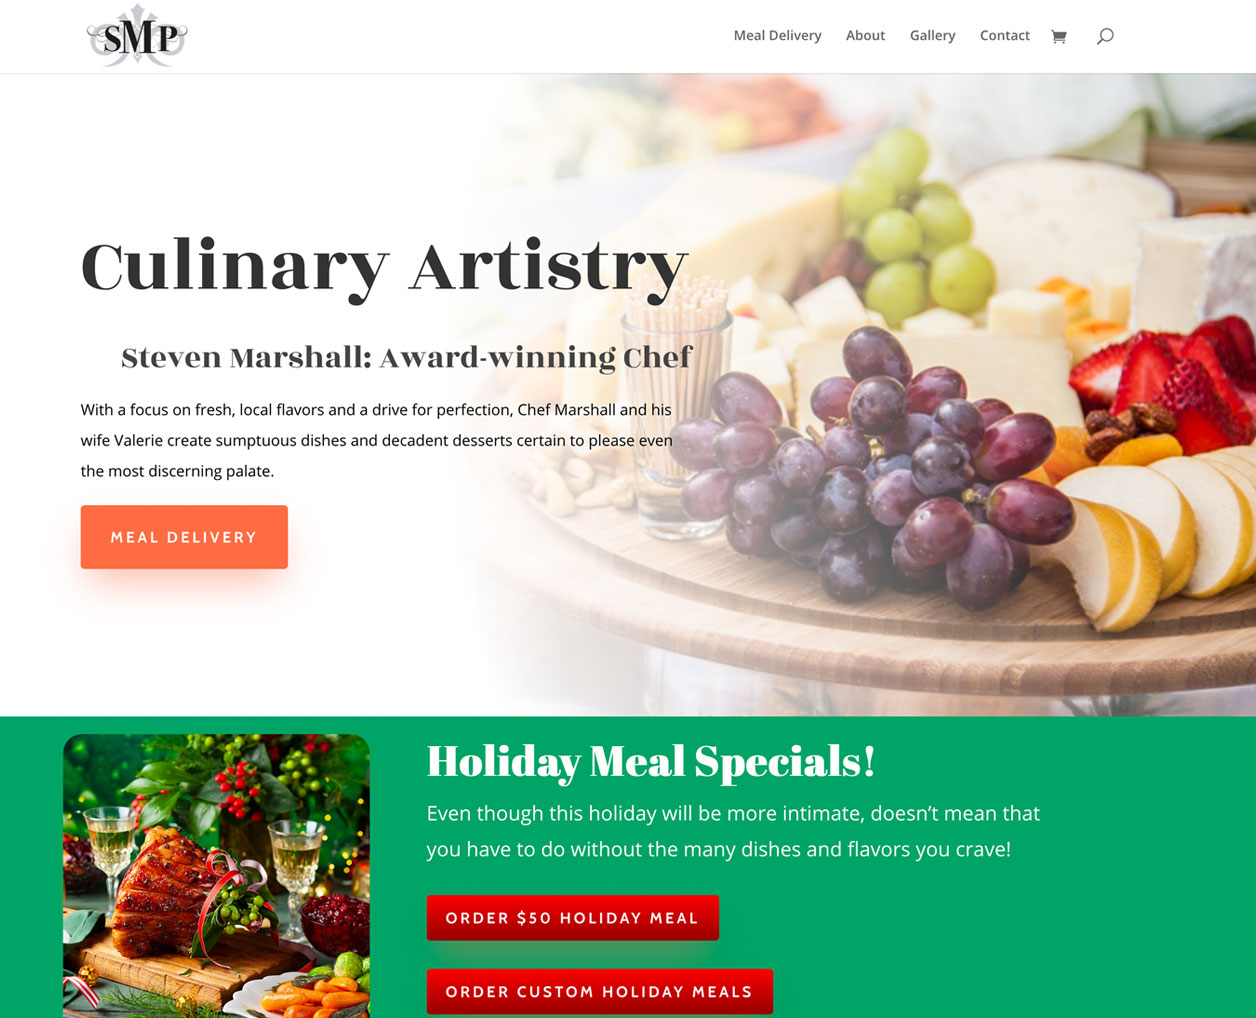 SMP Catering website